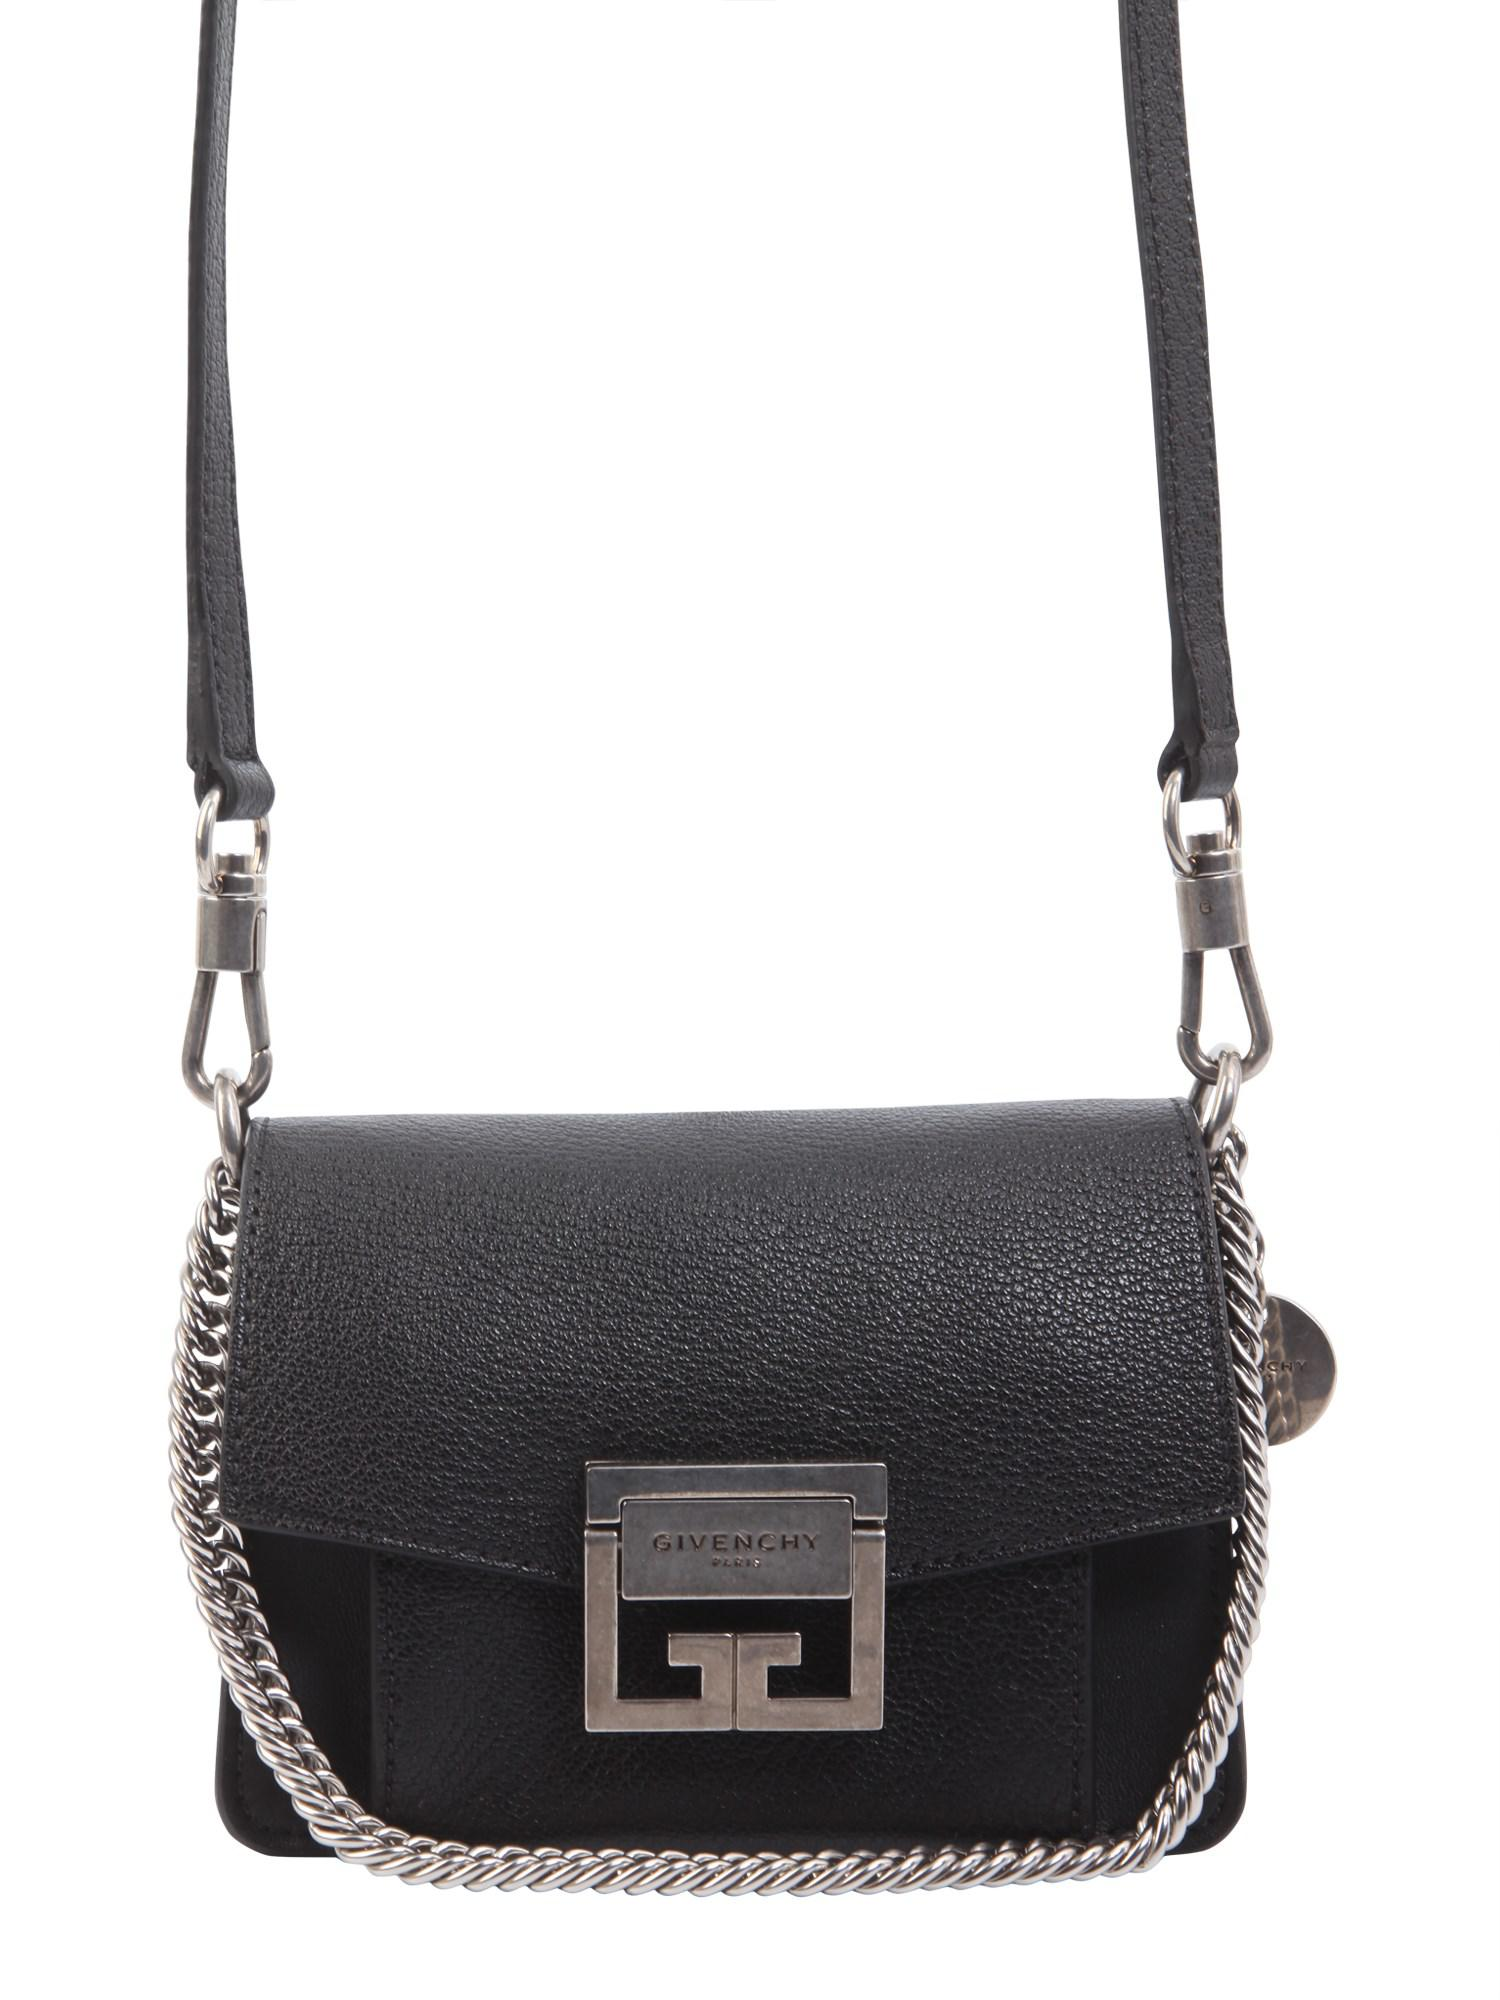 ad2a75610635 Lyst - Givenchy Mini Gv3 Bag In Flat Grain Leather in Black